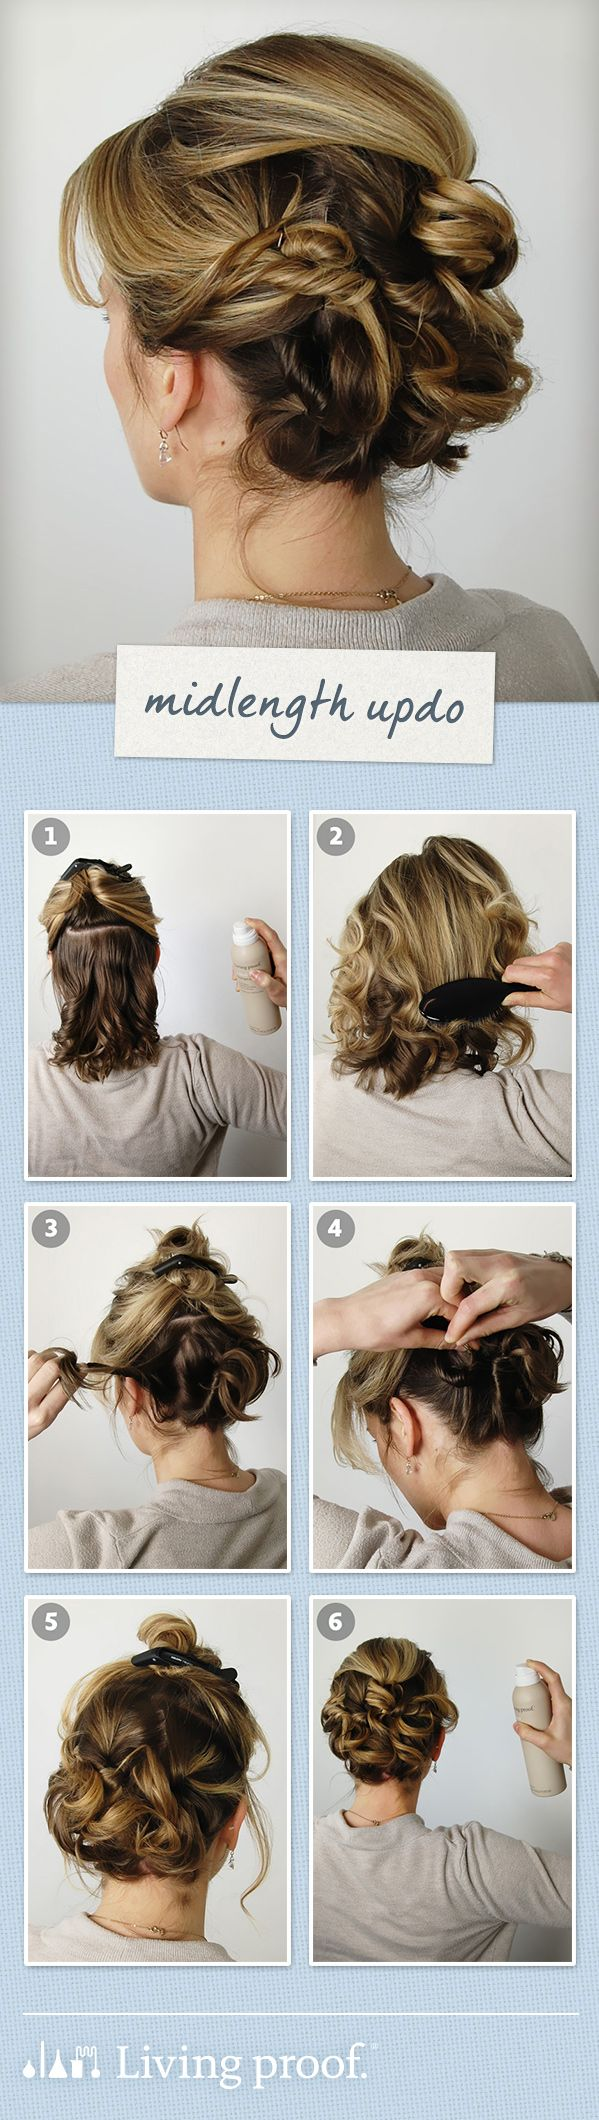 Livingproofinc wedding guest hairstylemidlength updo hair styles